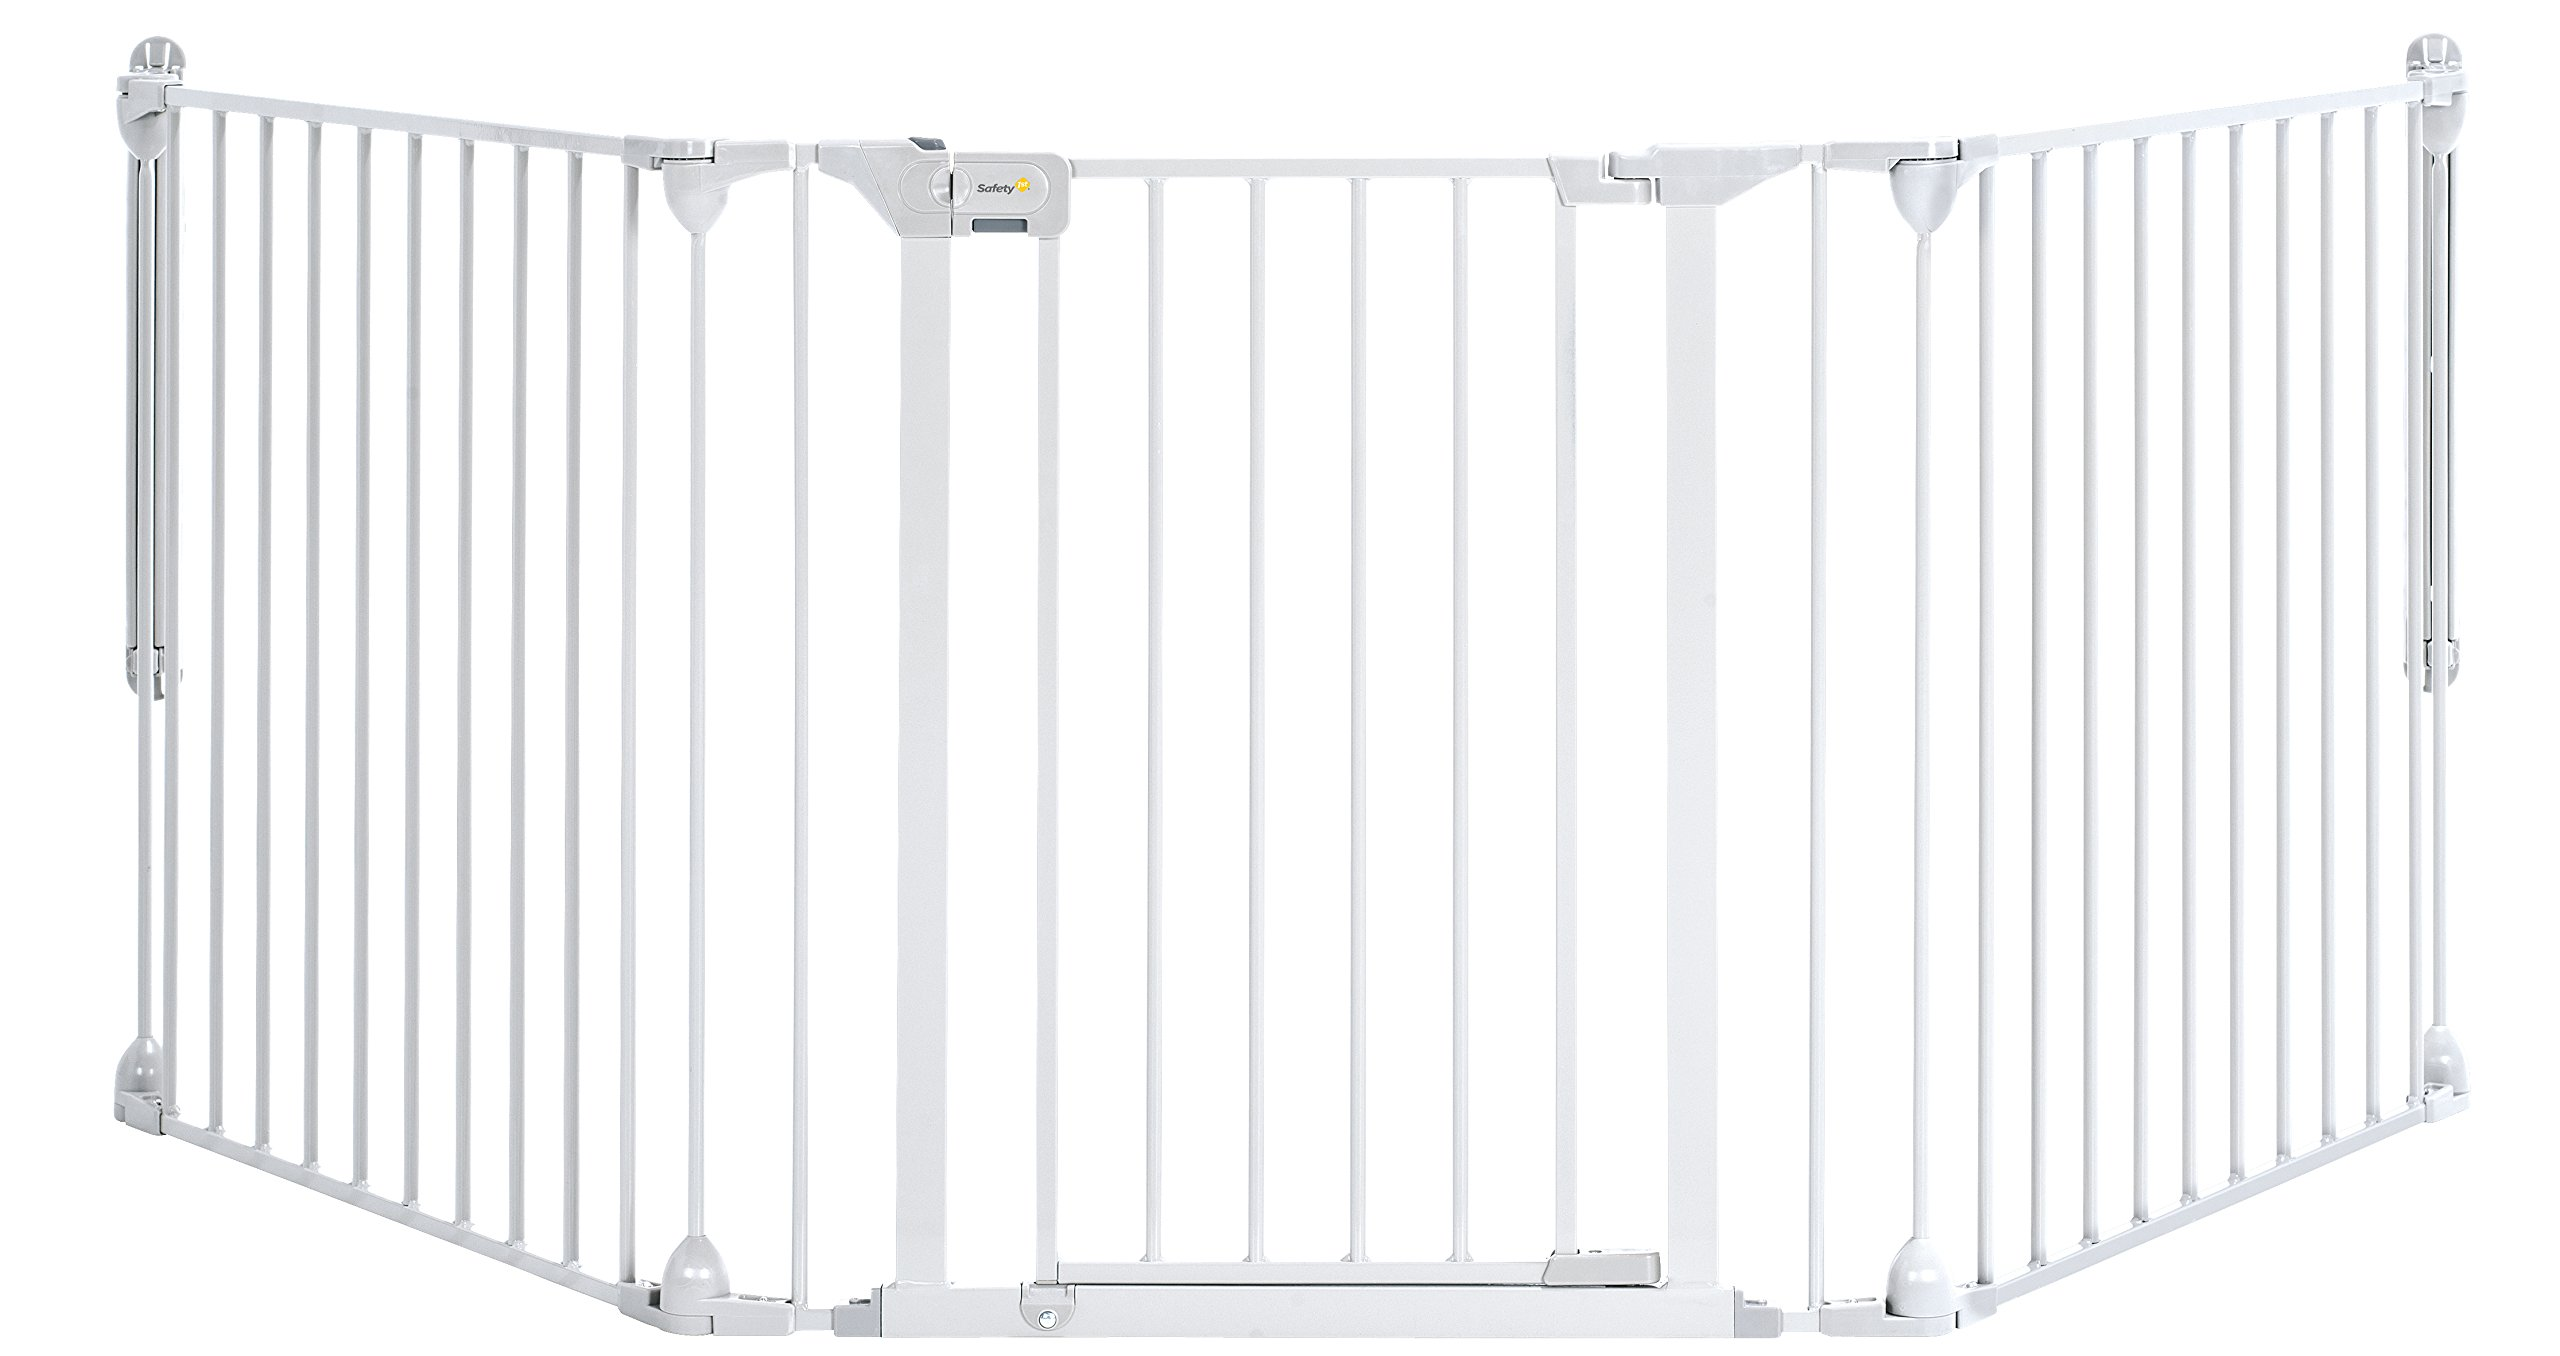 Safety 1st Modular 3 Multi-Panel Gate, White  Safety 1st